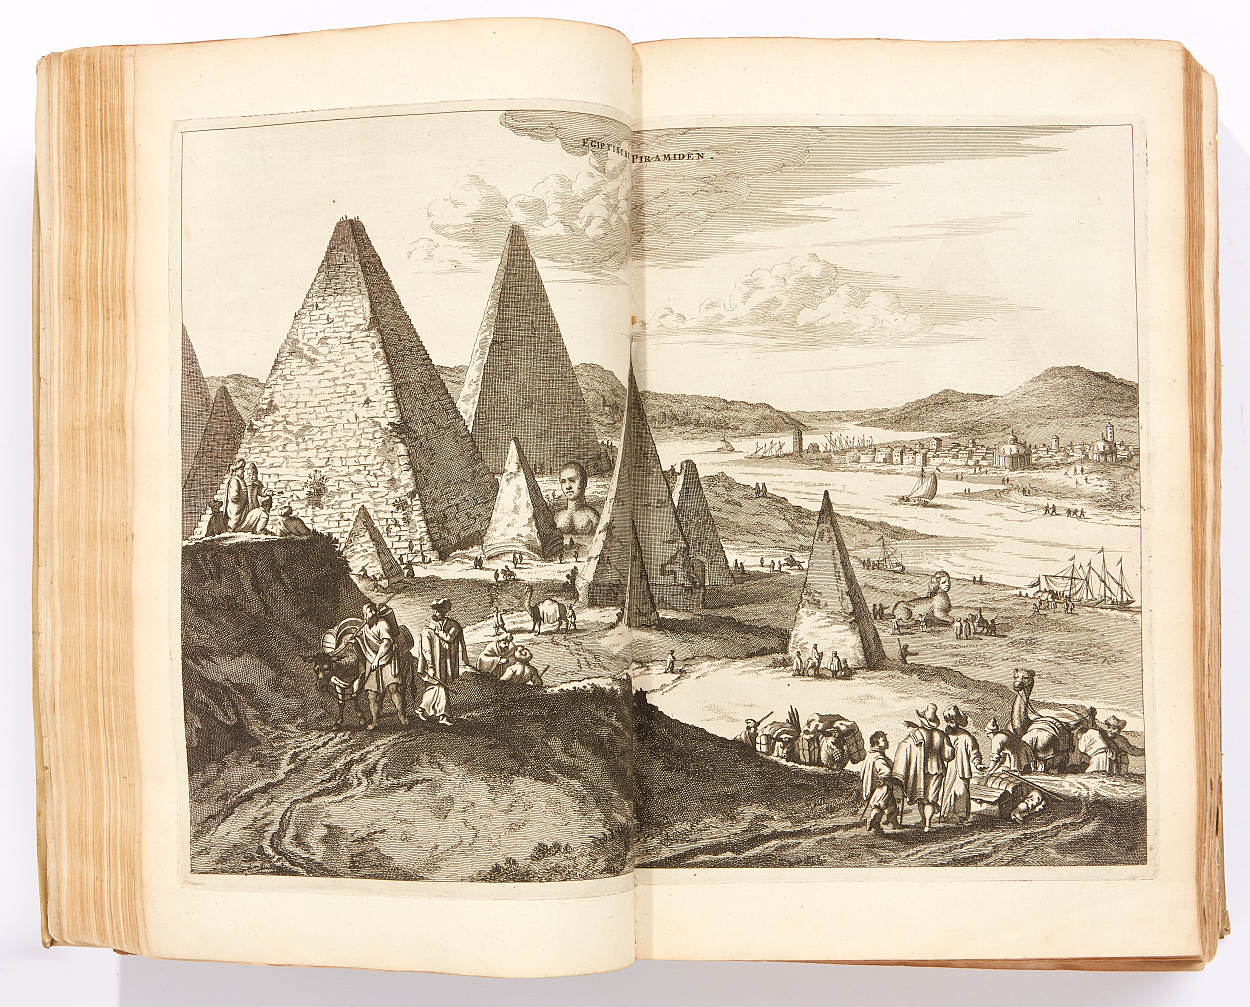 Dapper's African travels 1668